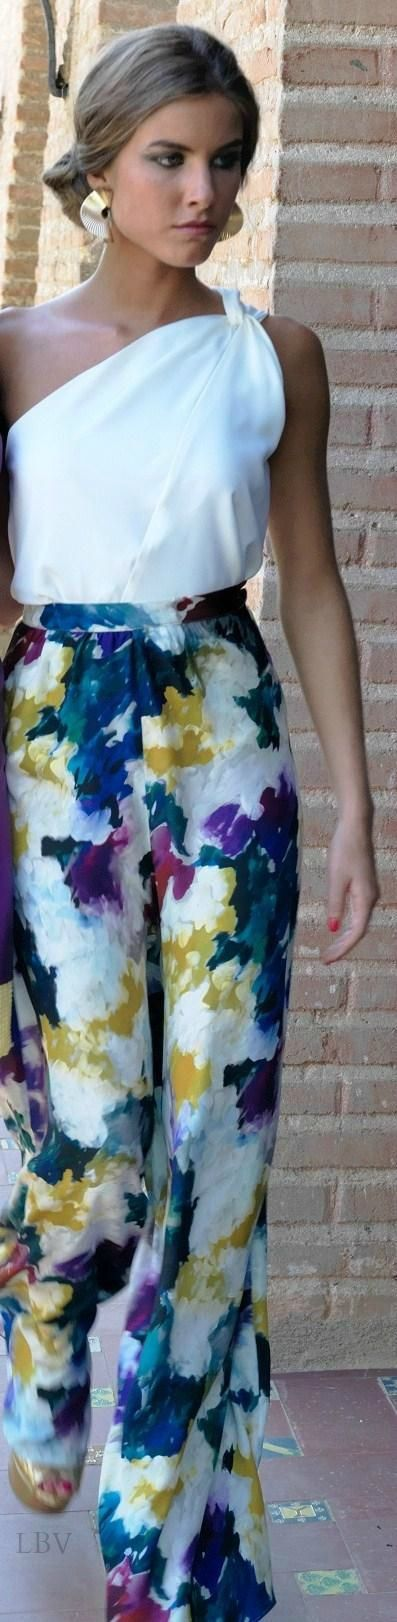 Hermoso outfit!!!